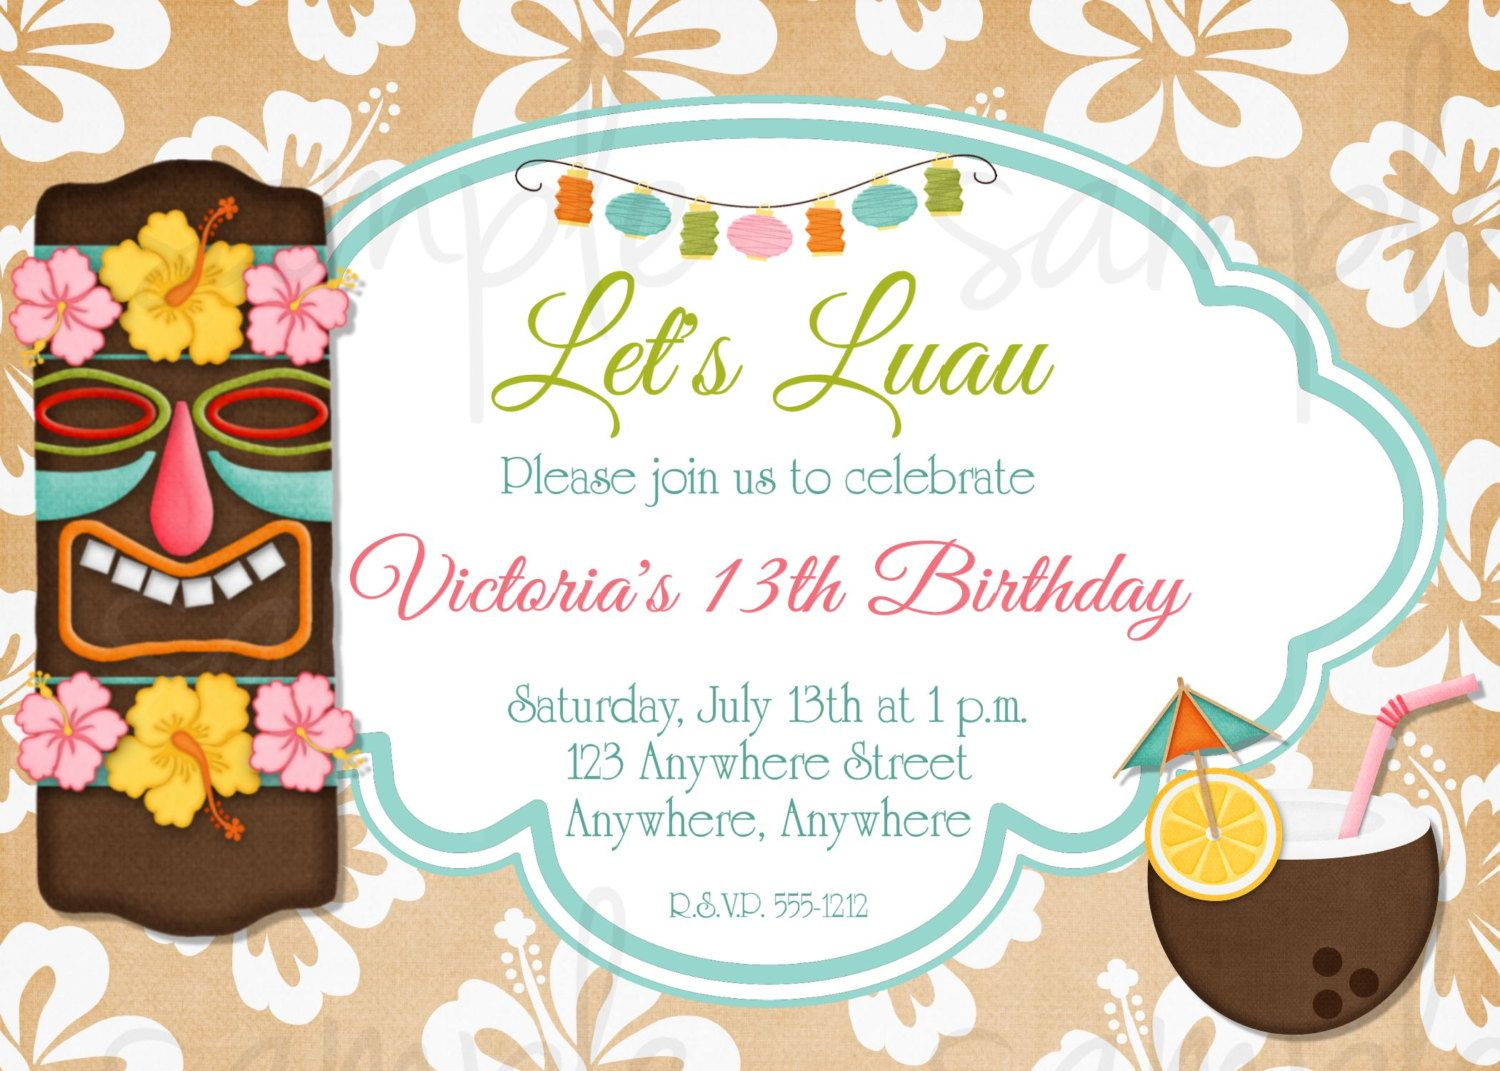 Baby luau birthday invitations new invitations pinterest baby luau birthday invitations stopboris Gallery